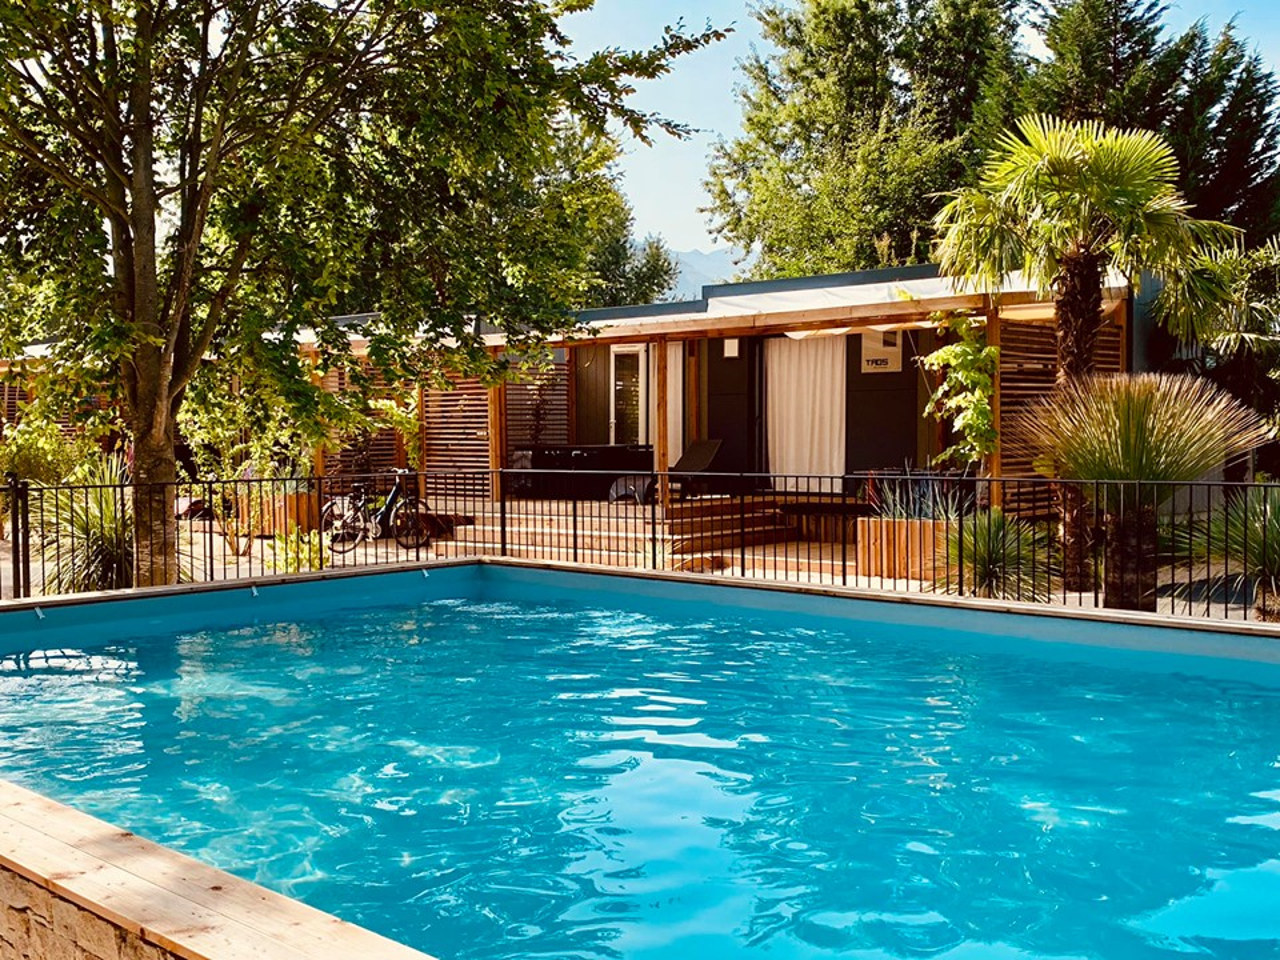 CAMPING SUNELIA LES 3 VALLEES © 3 VALLEES